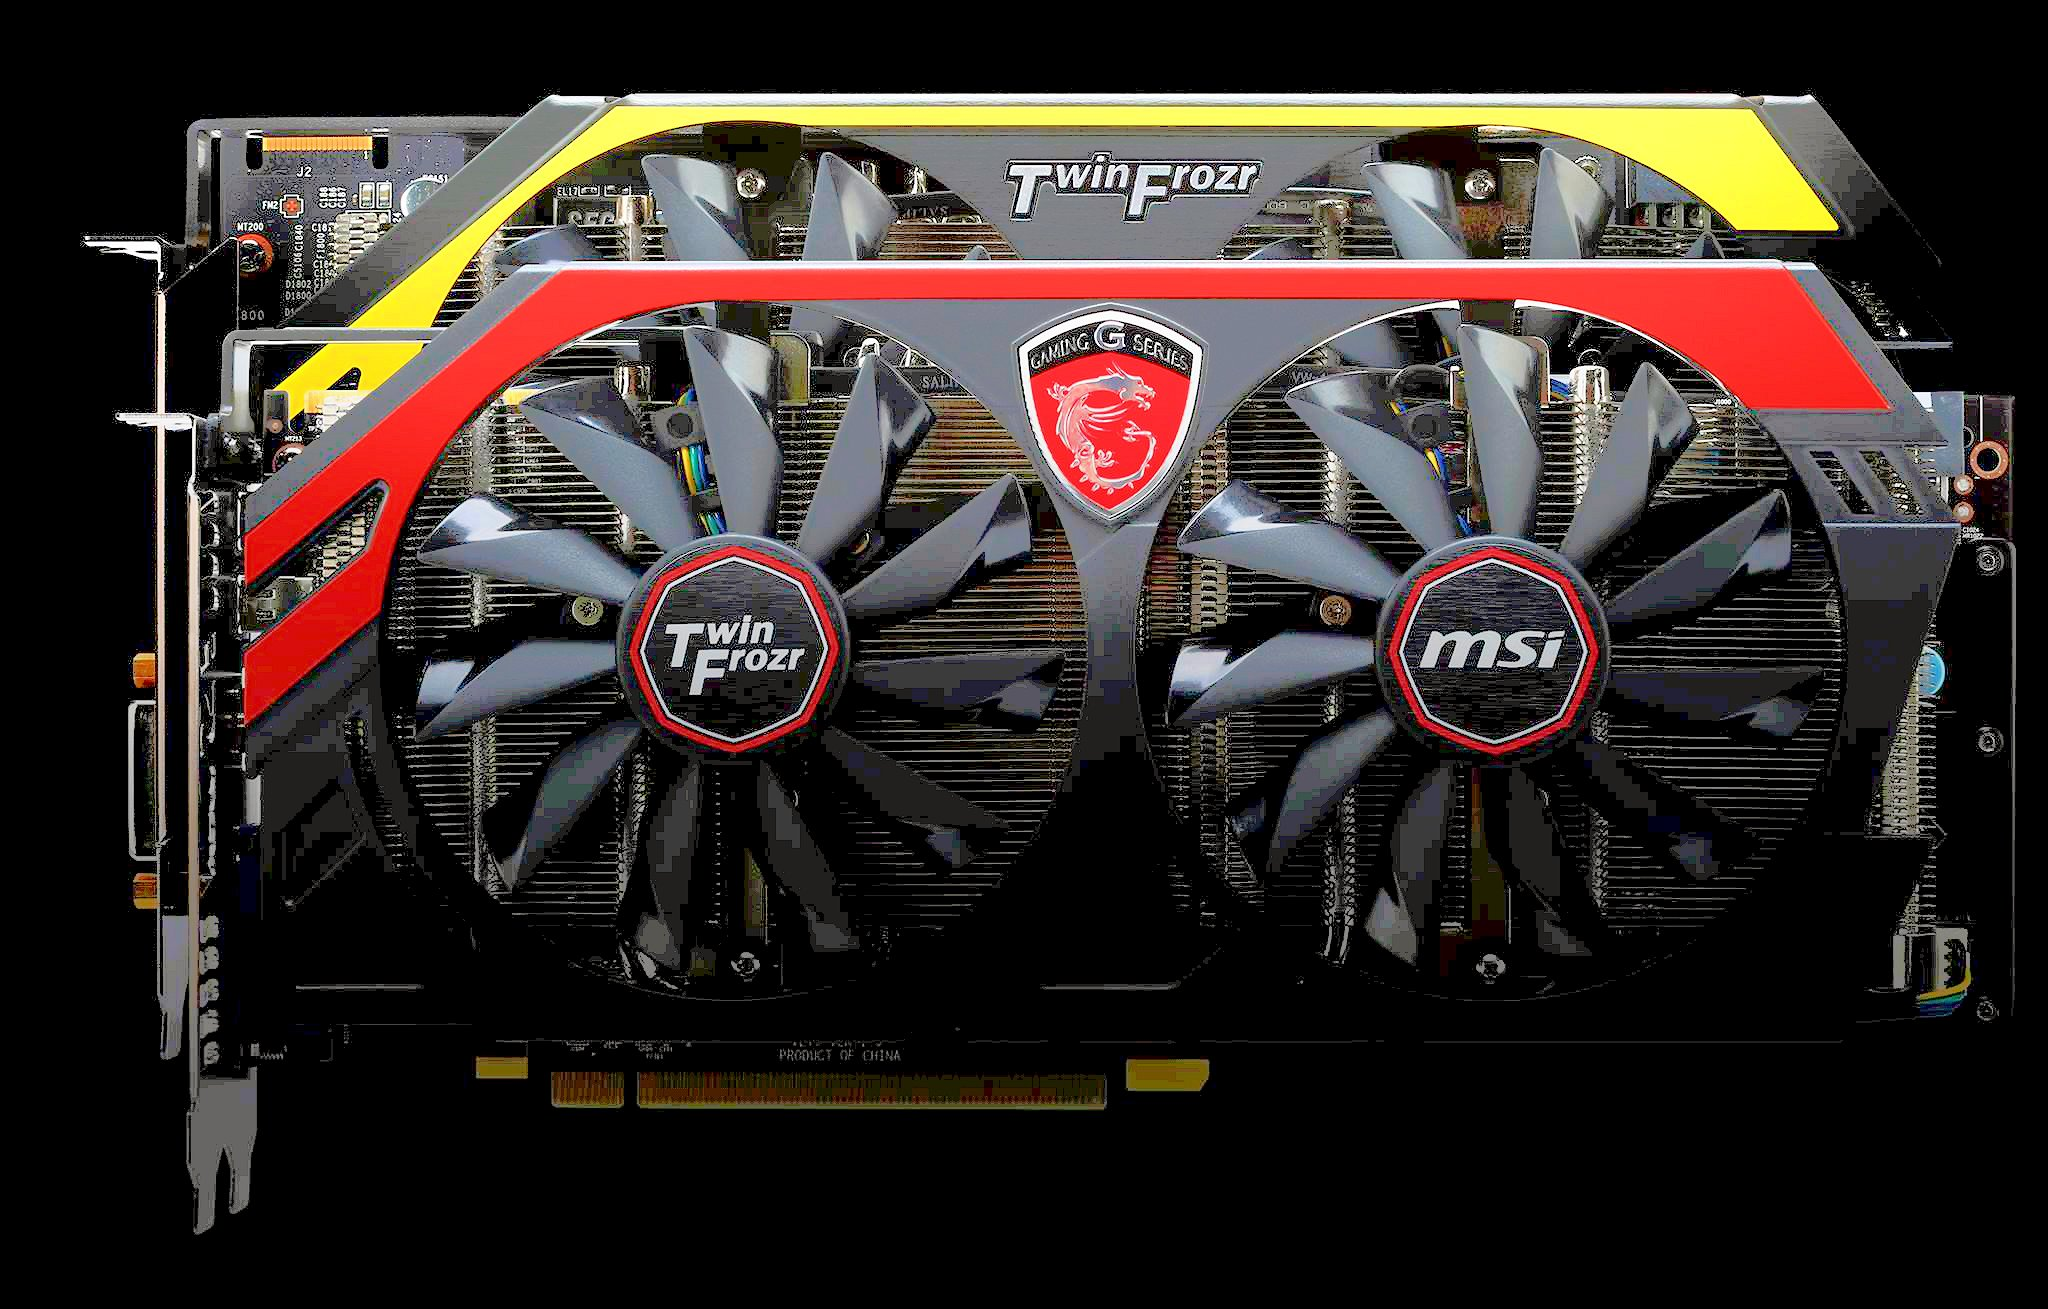 MSI Radeon R9 280X GAMING pictured and detailed | VideoCardz com